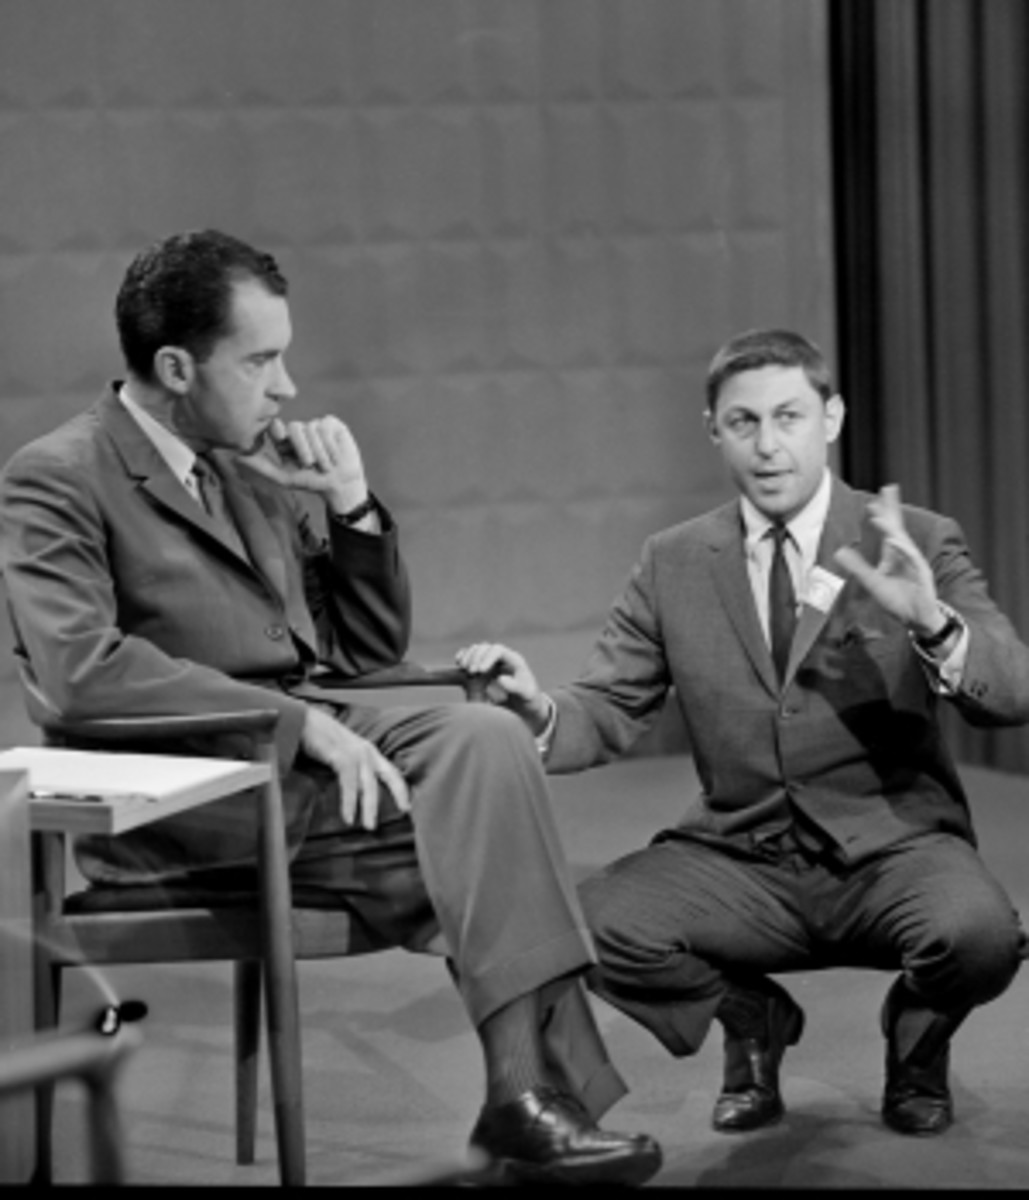 Producer Don Hewitt of CBS News speaks with Vice President Richard Nixon on the set of the first televised debate.